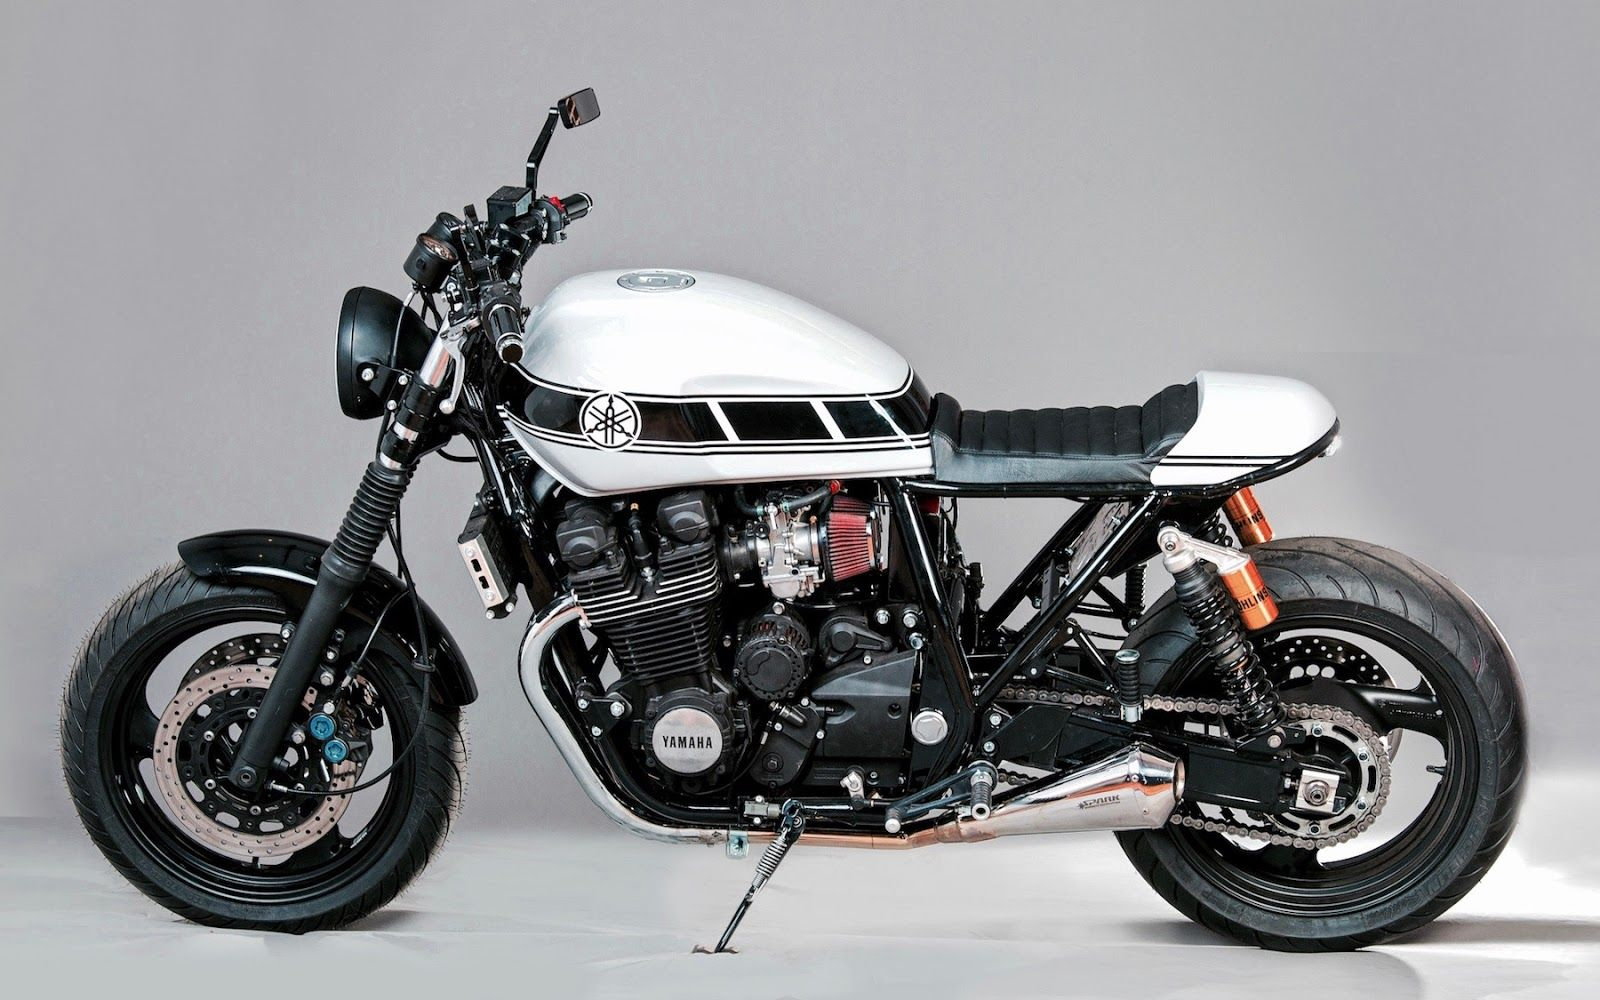 Yamaha XJR 1300 - the real Japanese king of the roads